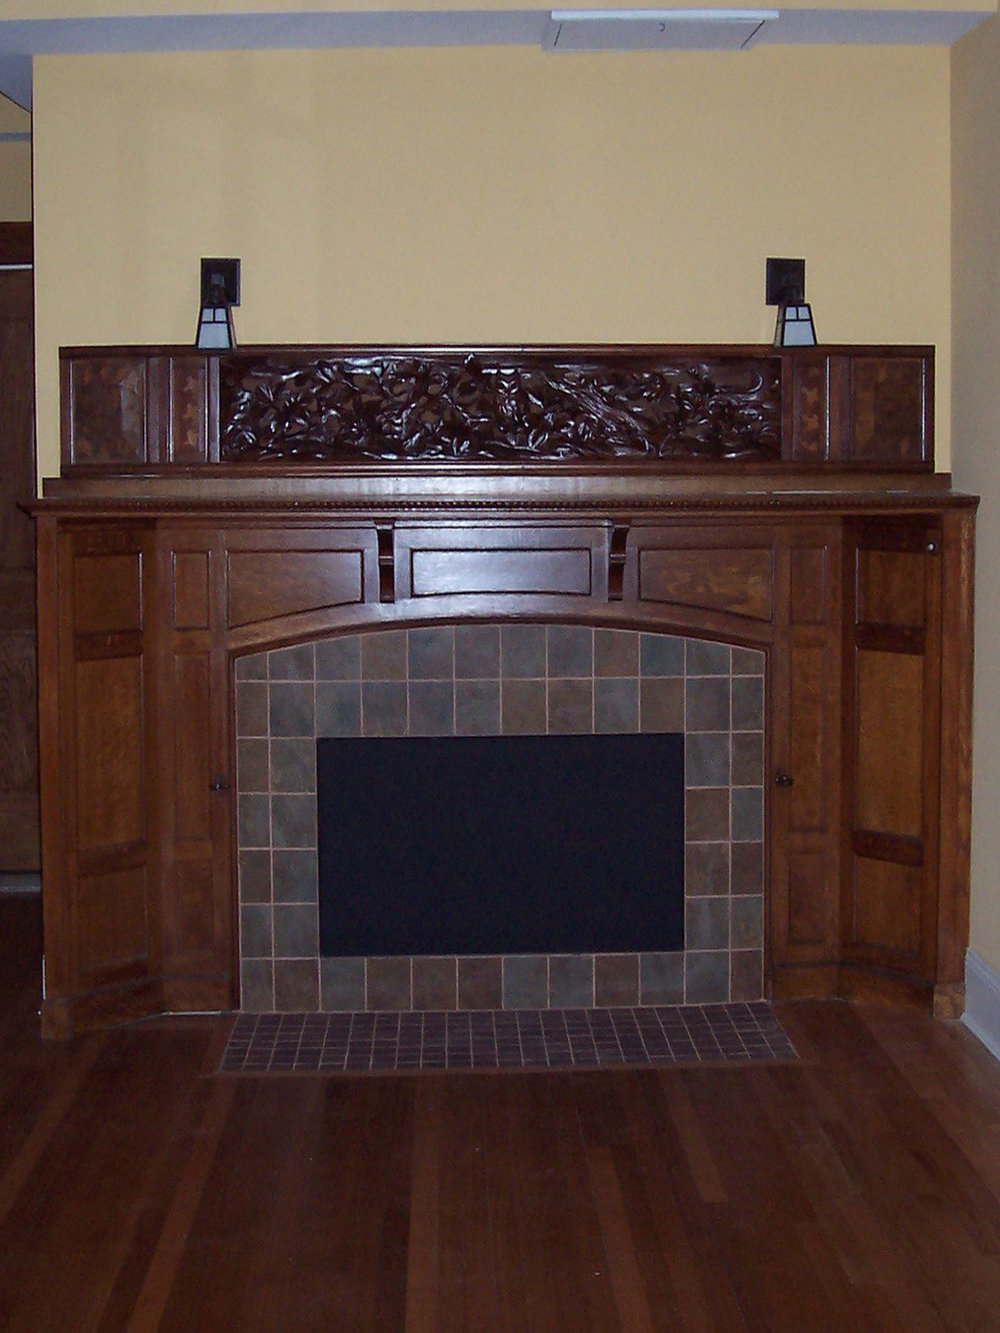 Fireplace center int pic.jpg